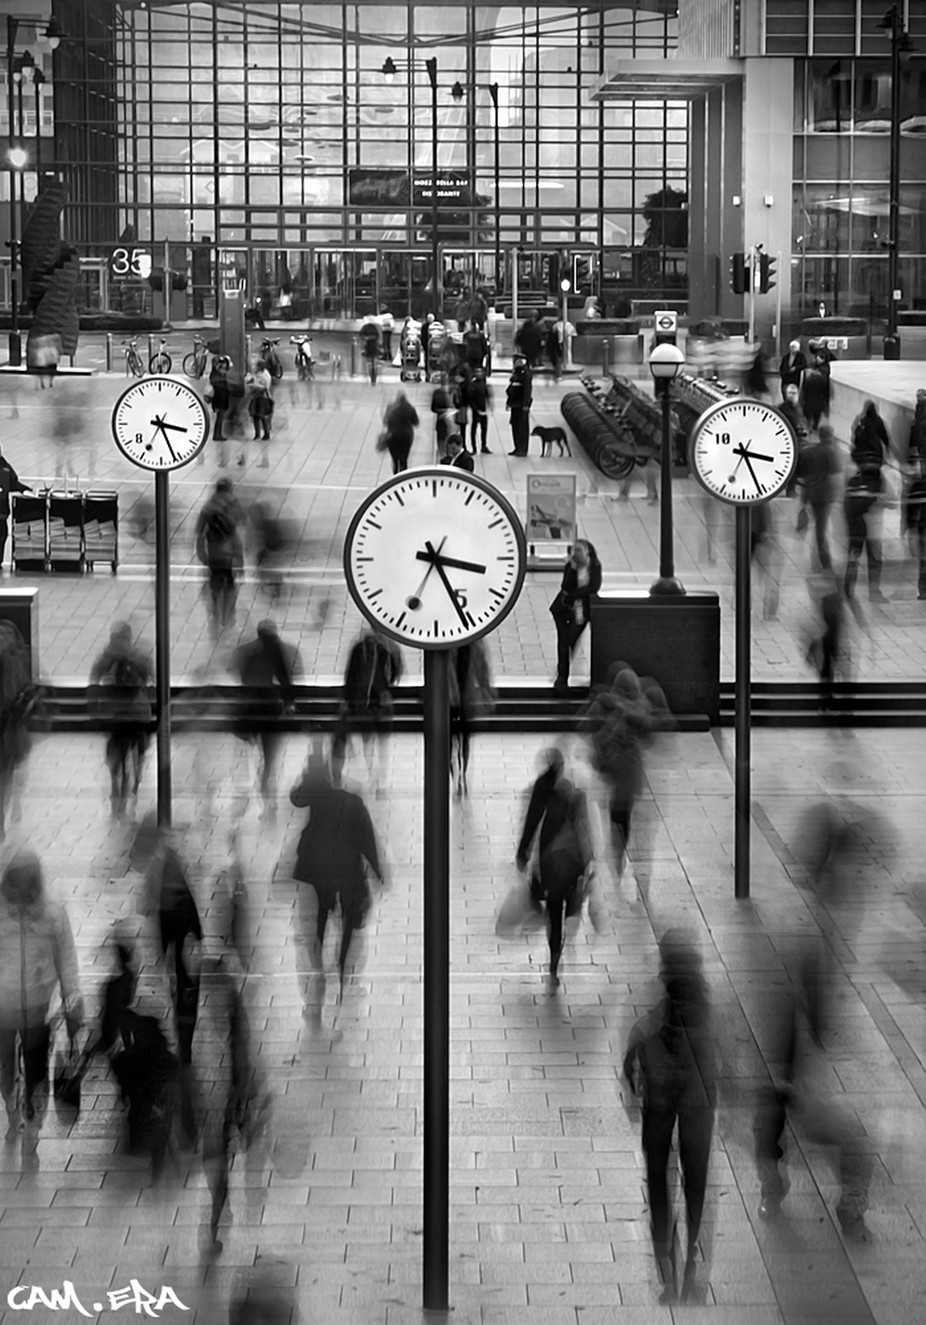 Slaves of Time by YuliyVasilev - My City Photo Contest